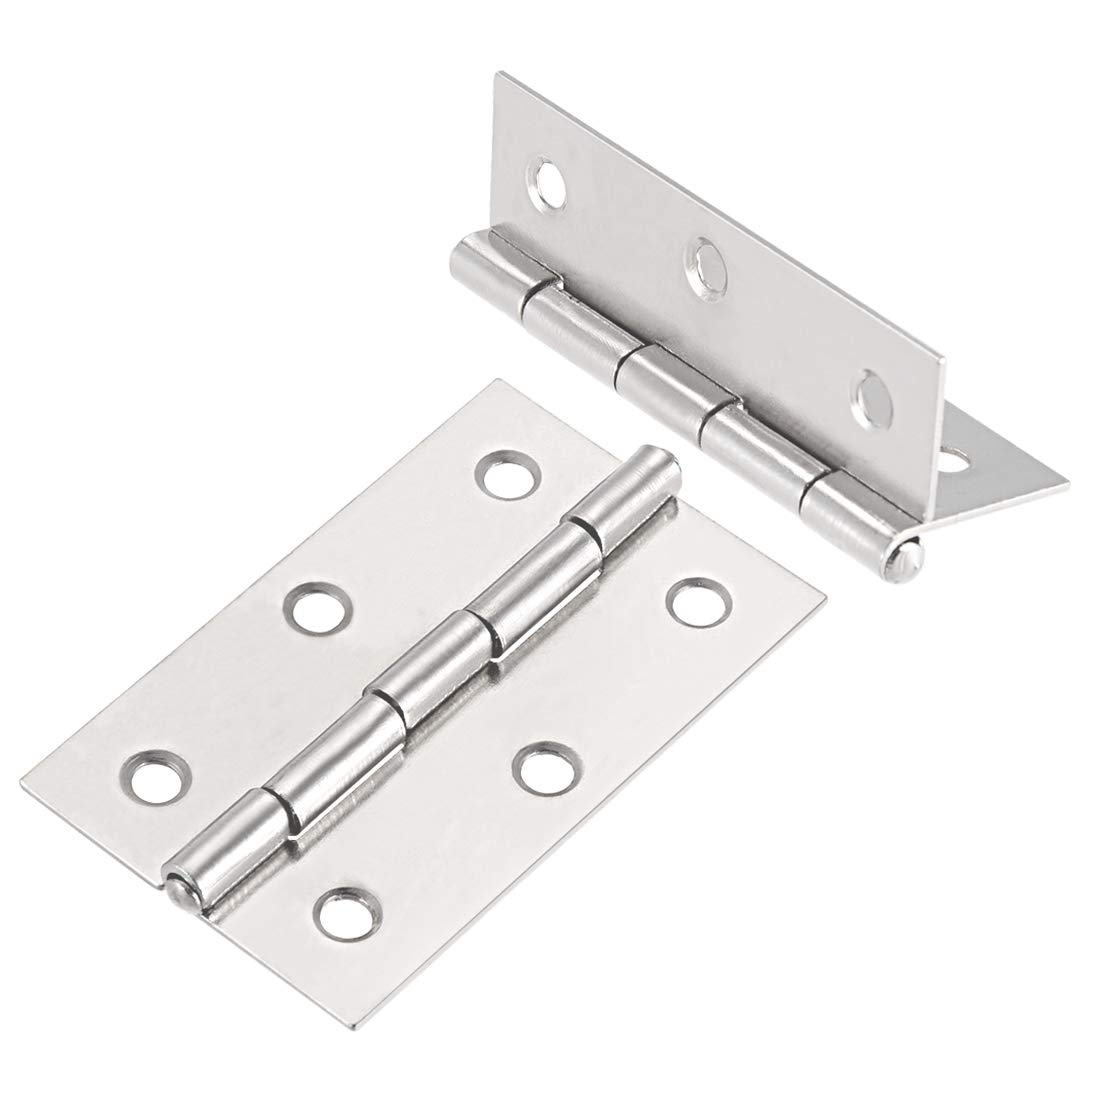 uxcell 2.68 Hinge Silver Door Cabinet Hinges Fittings Brushed Chrome Plain 10pcs a18061300ux0241